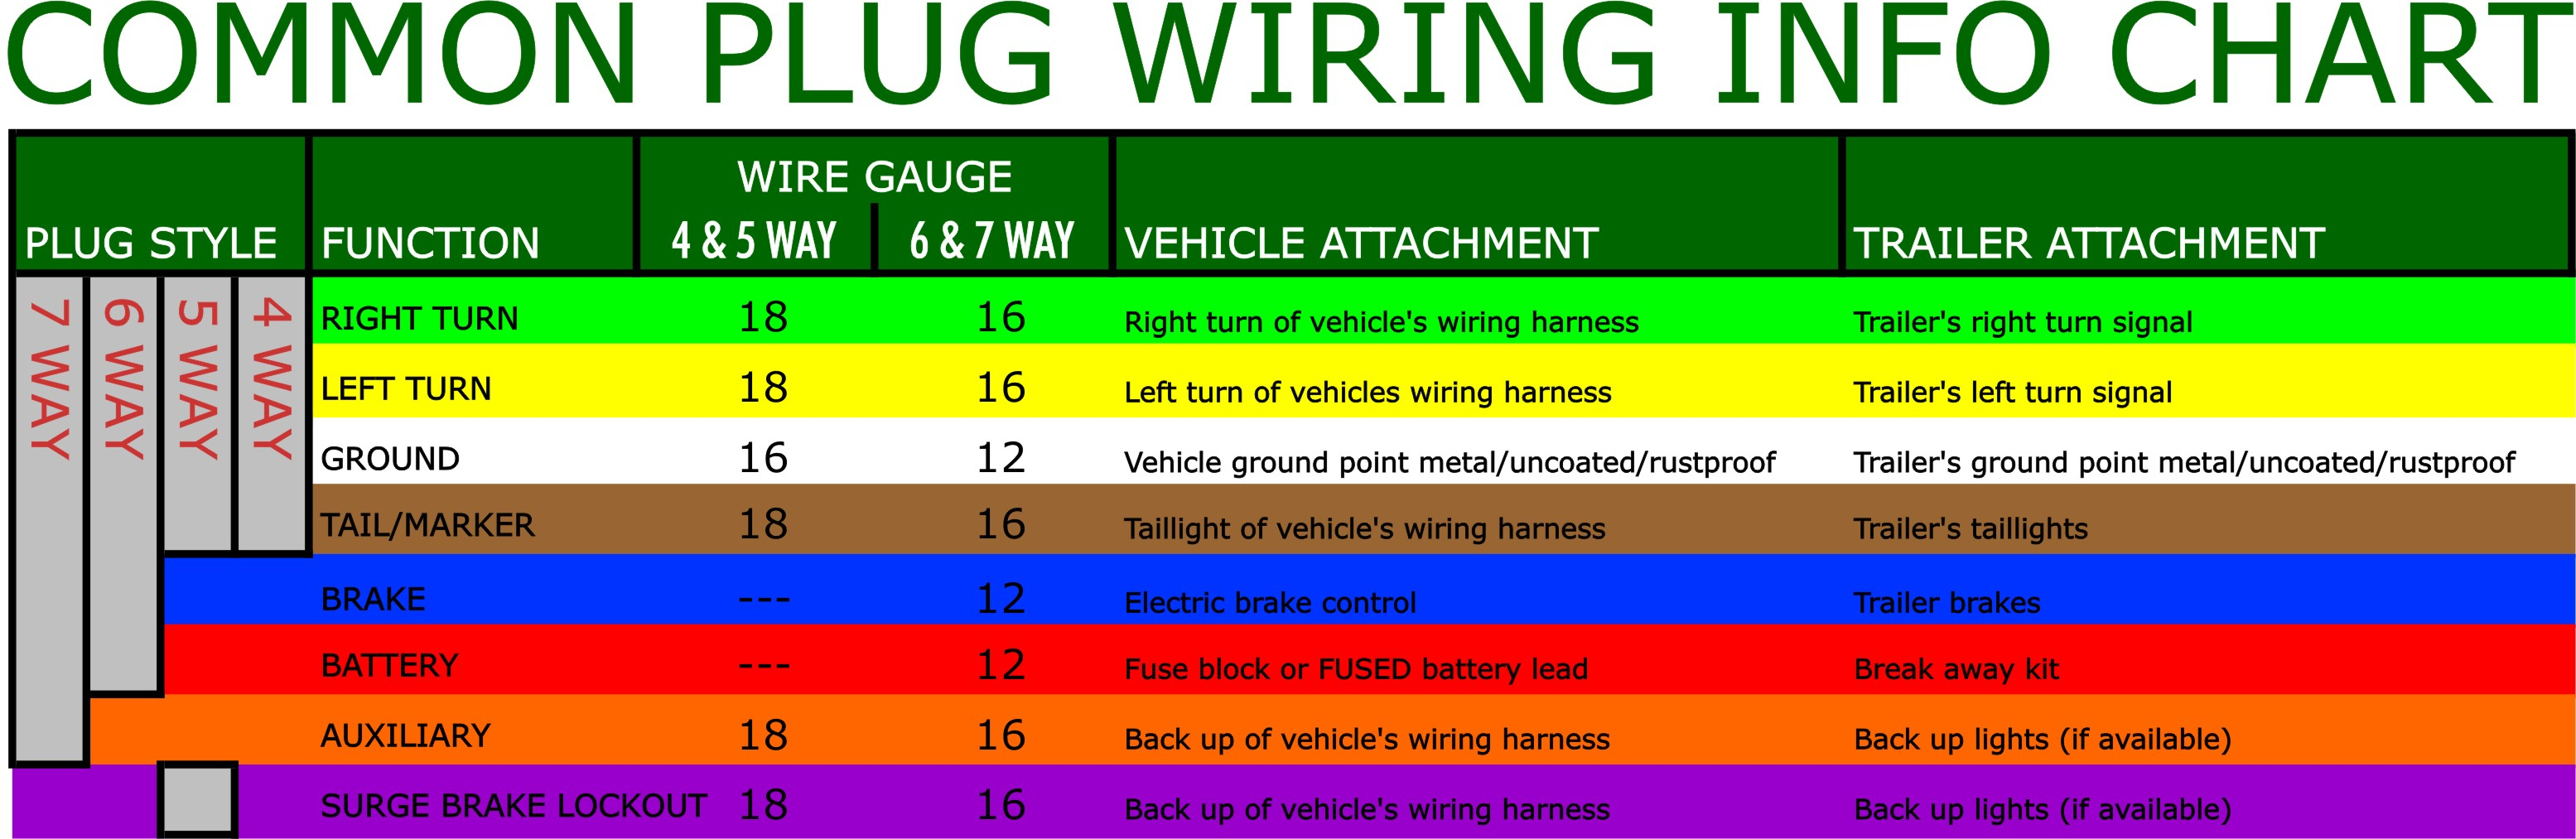 What Are The Most Common Trailer Plugs? - 4-Pin Trailer Hitch Wiring Diagram